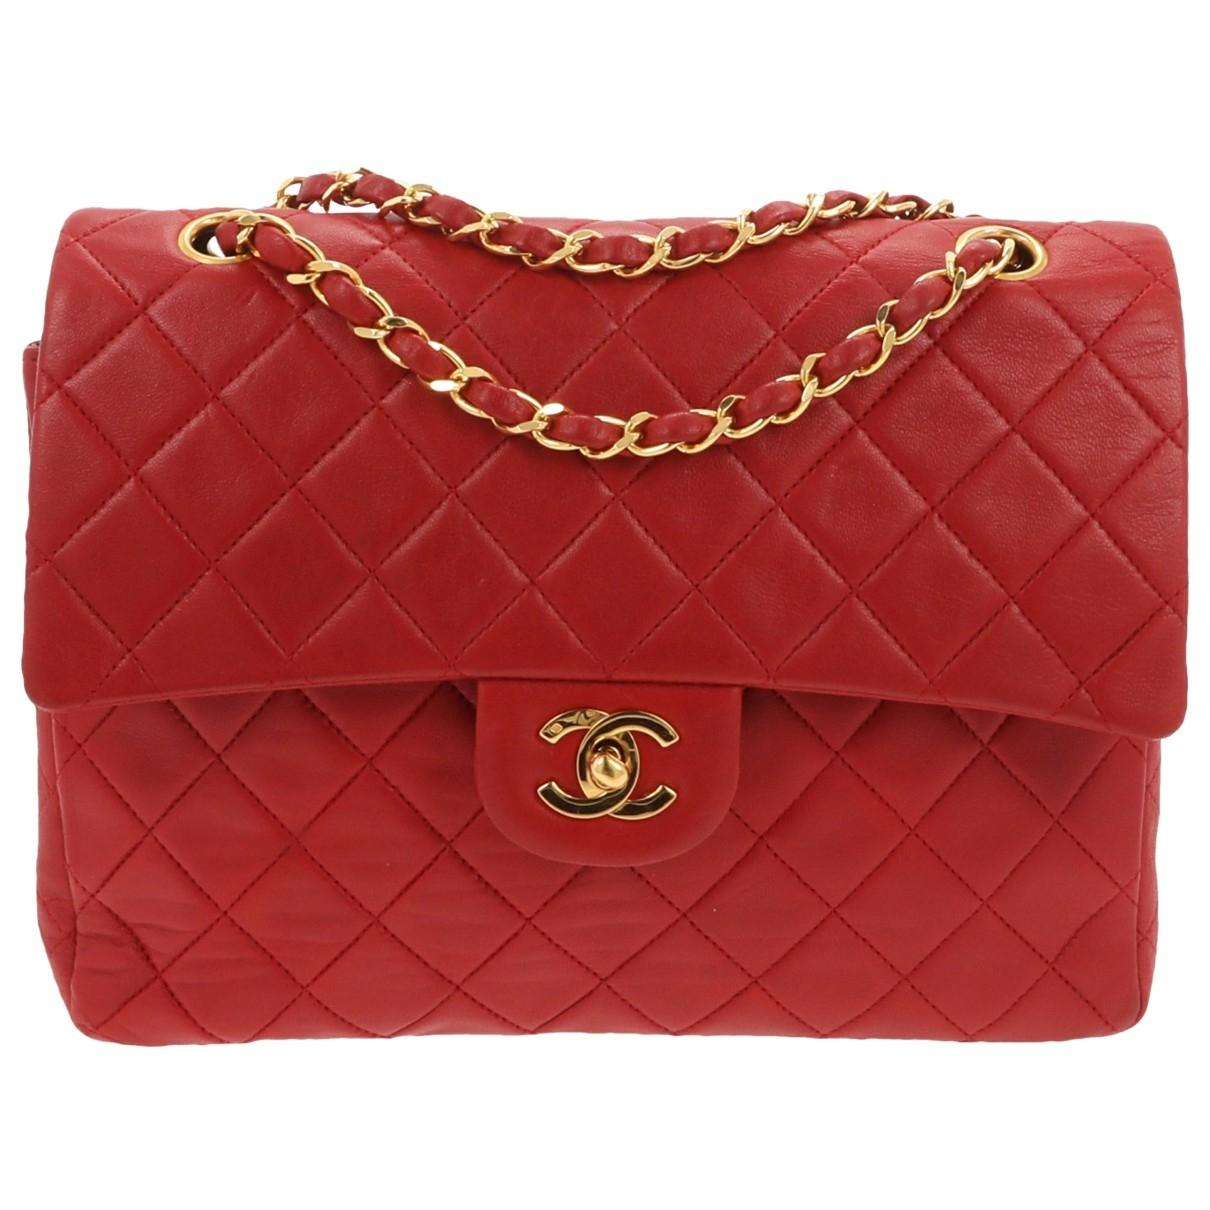 08b1e5ff19a6 Chanel Timeless classique Leather Crossbody Bag in Red - Lyst